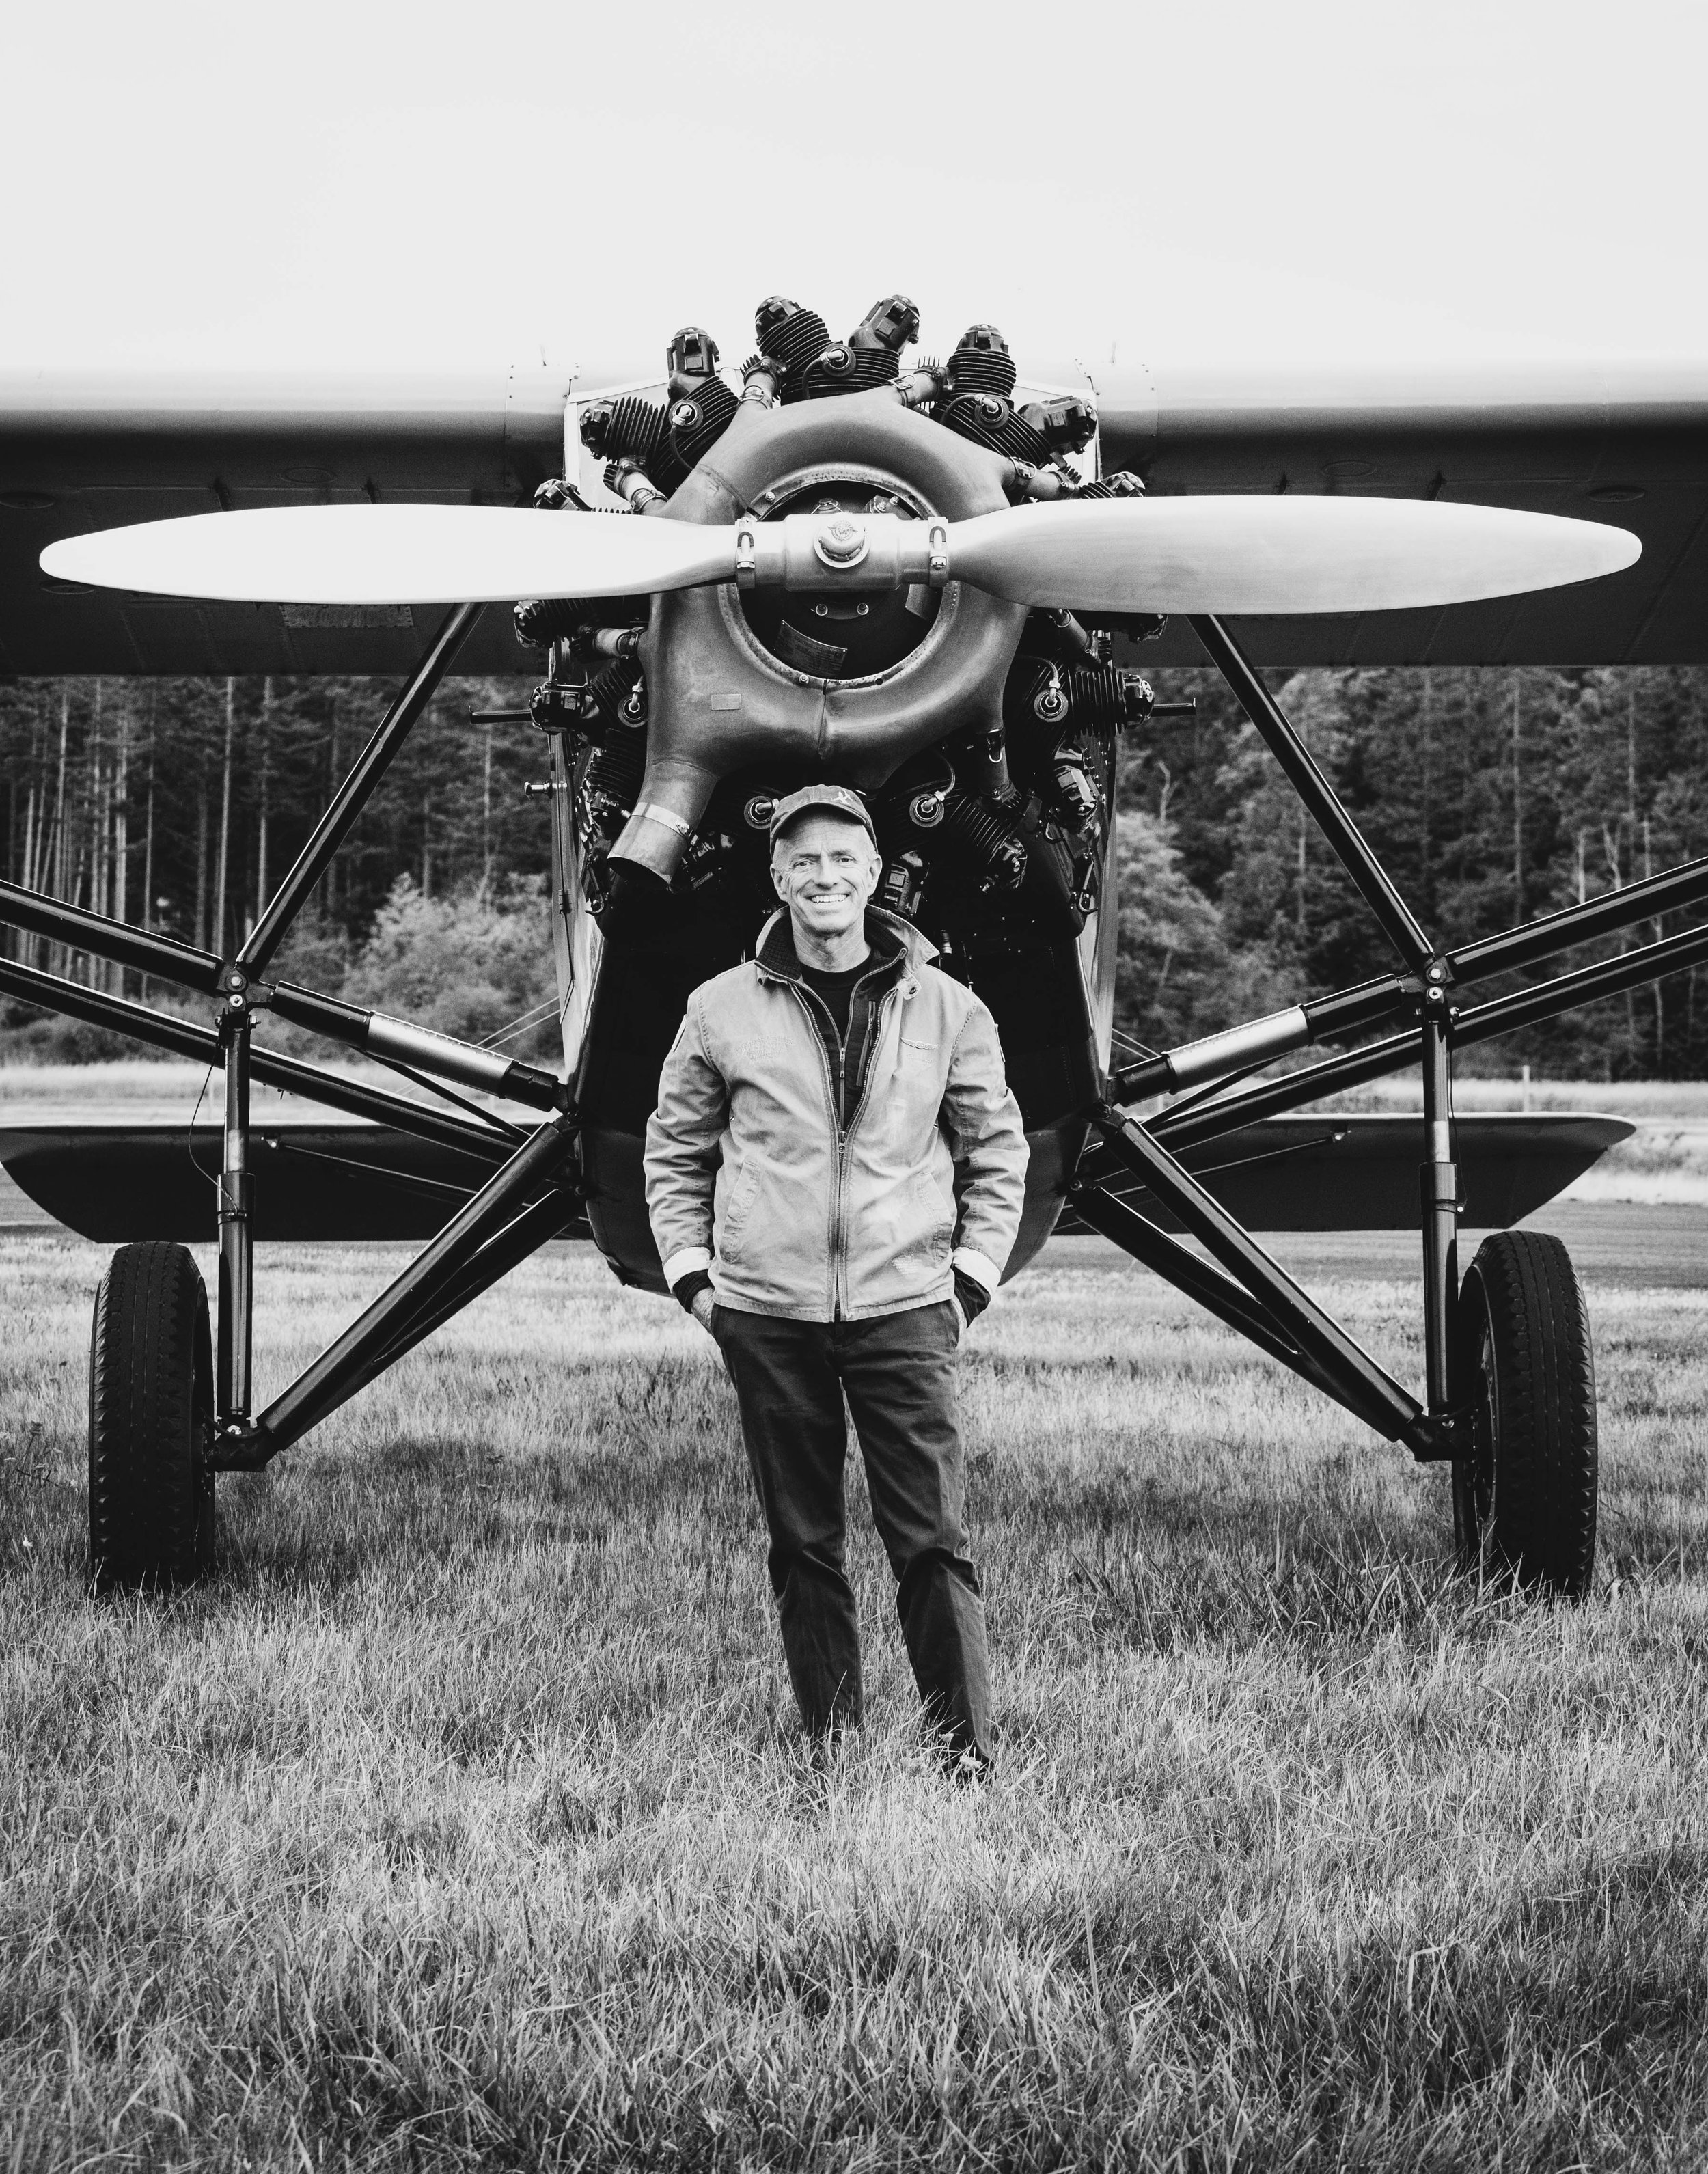 The Aviator - A portrait of a pilot with a love for vintage aircraft.